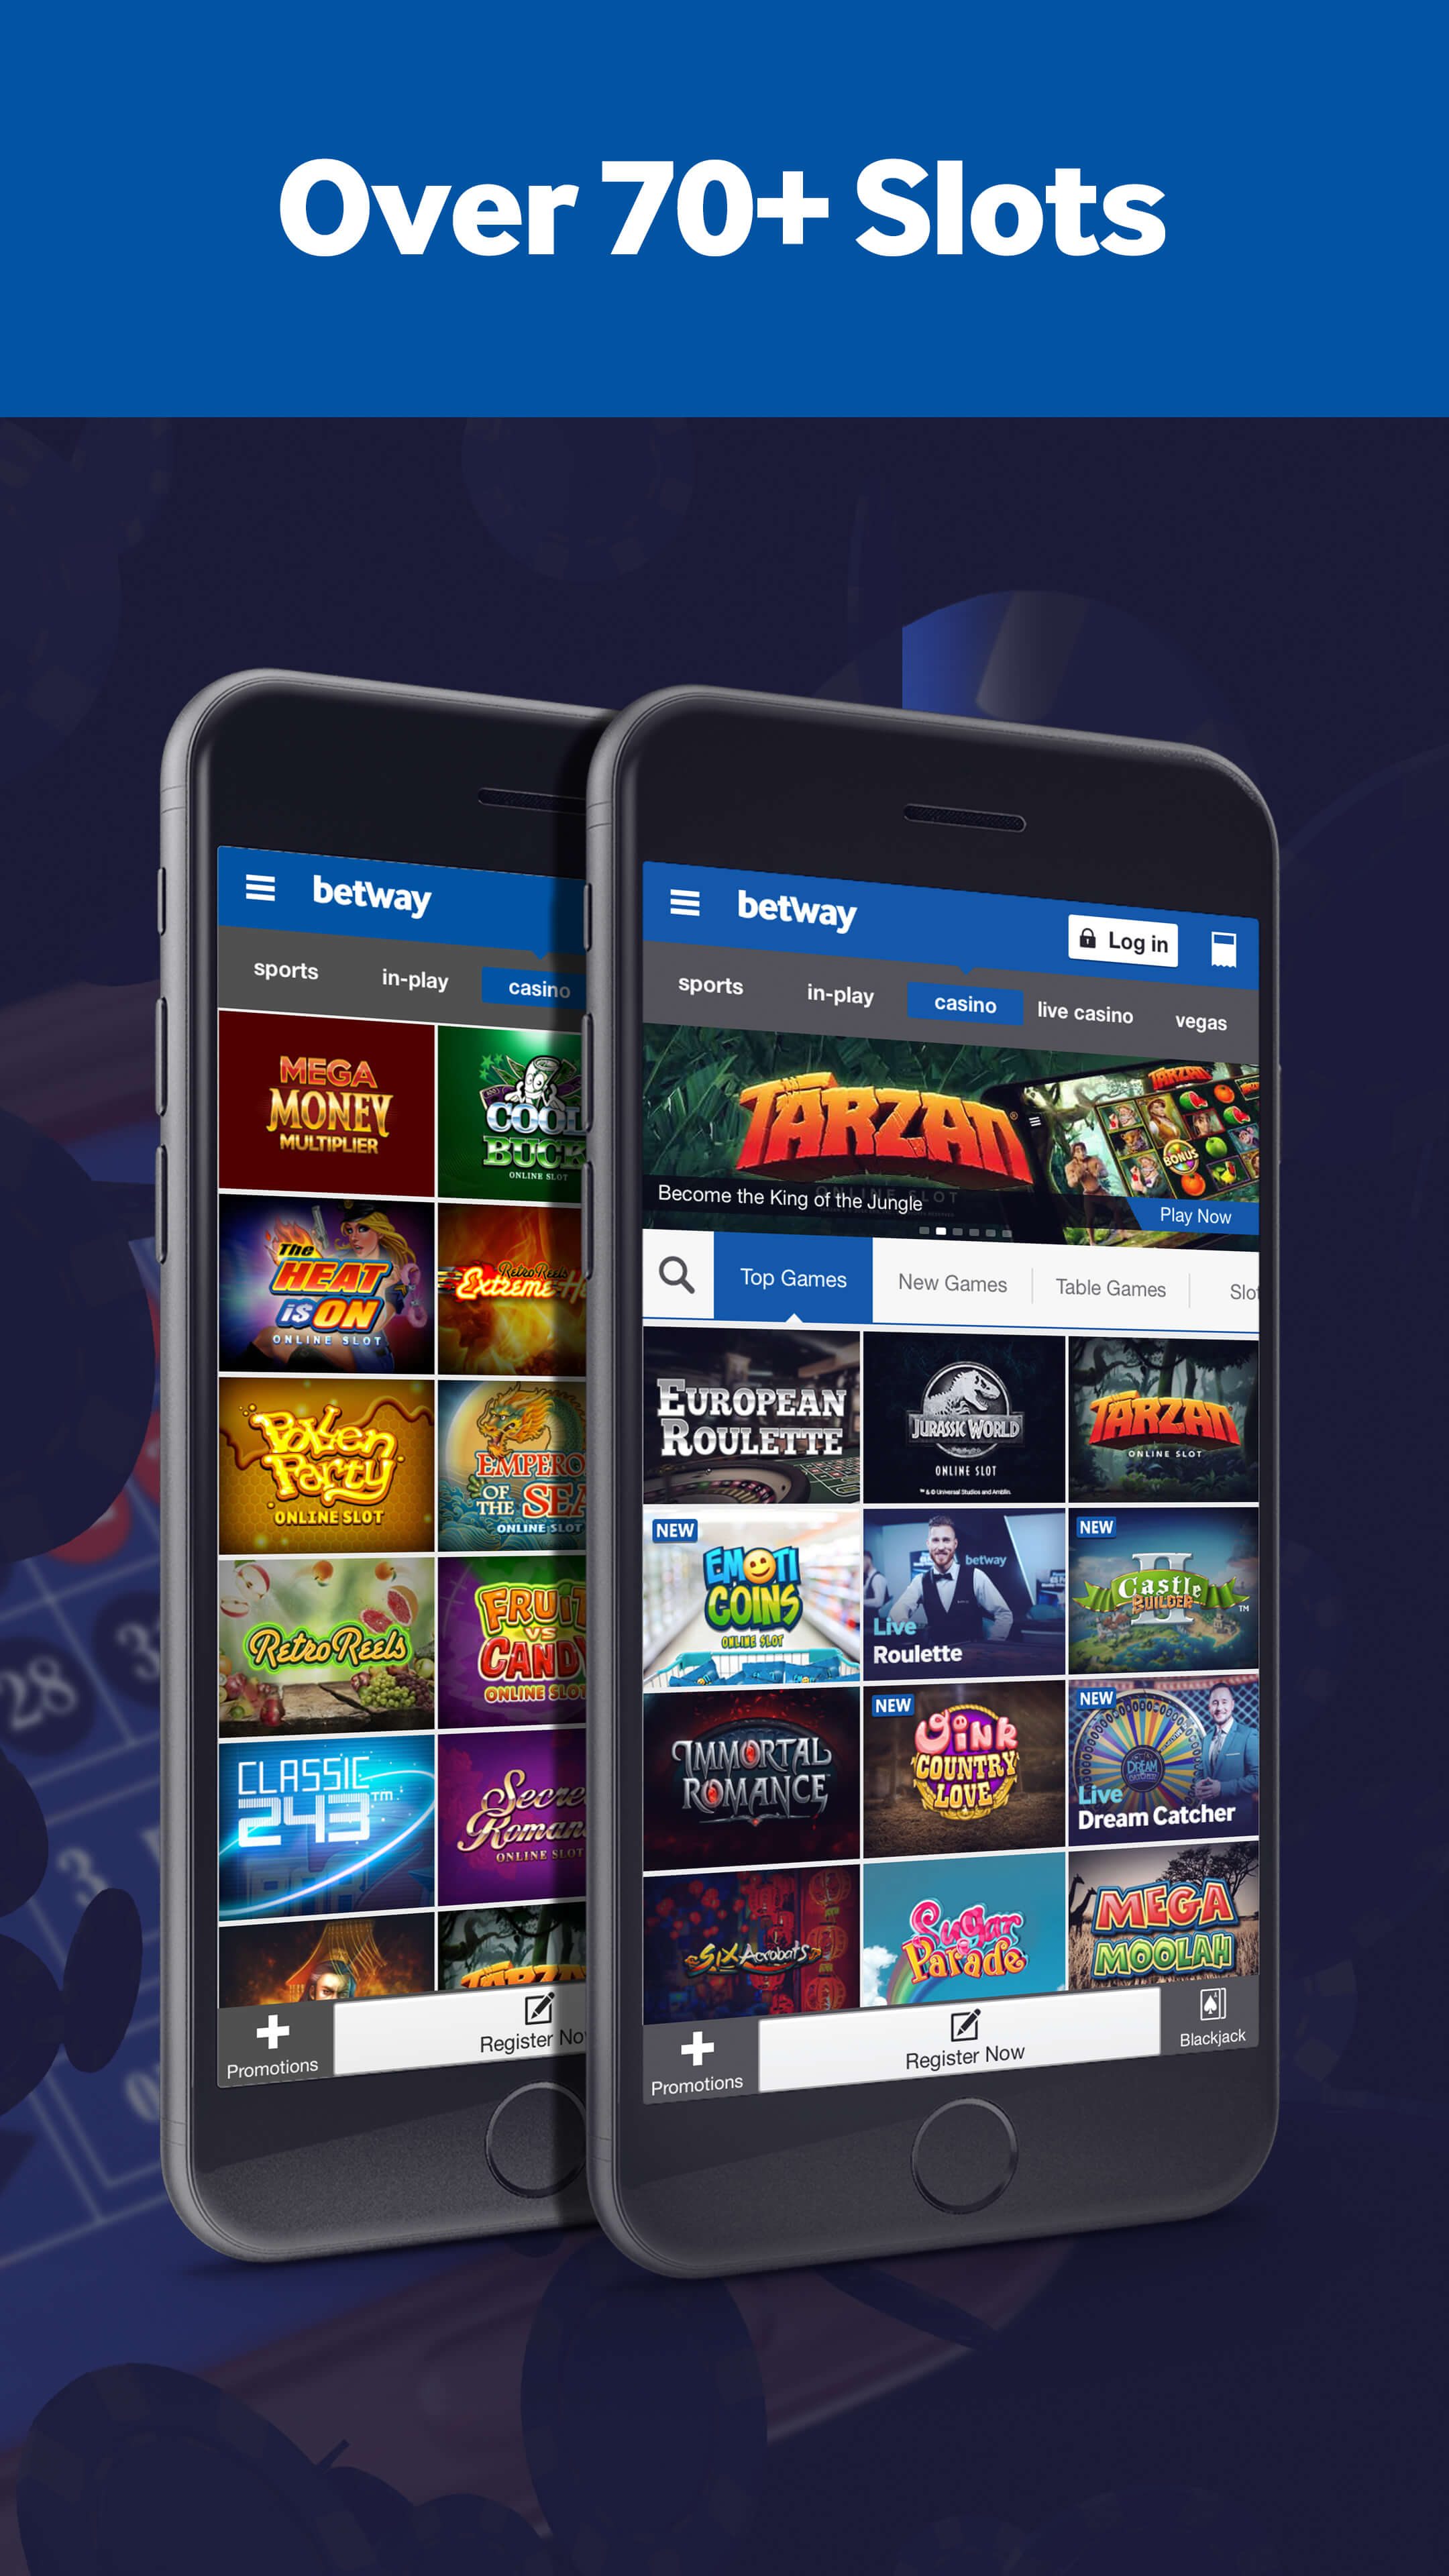 Mobile slots on device